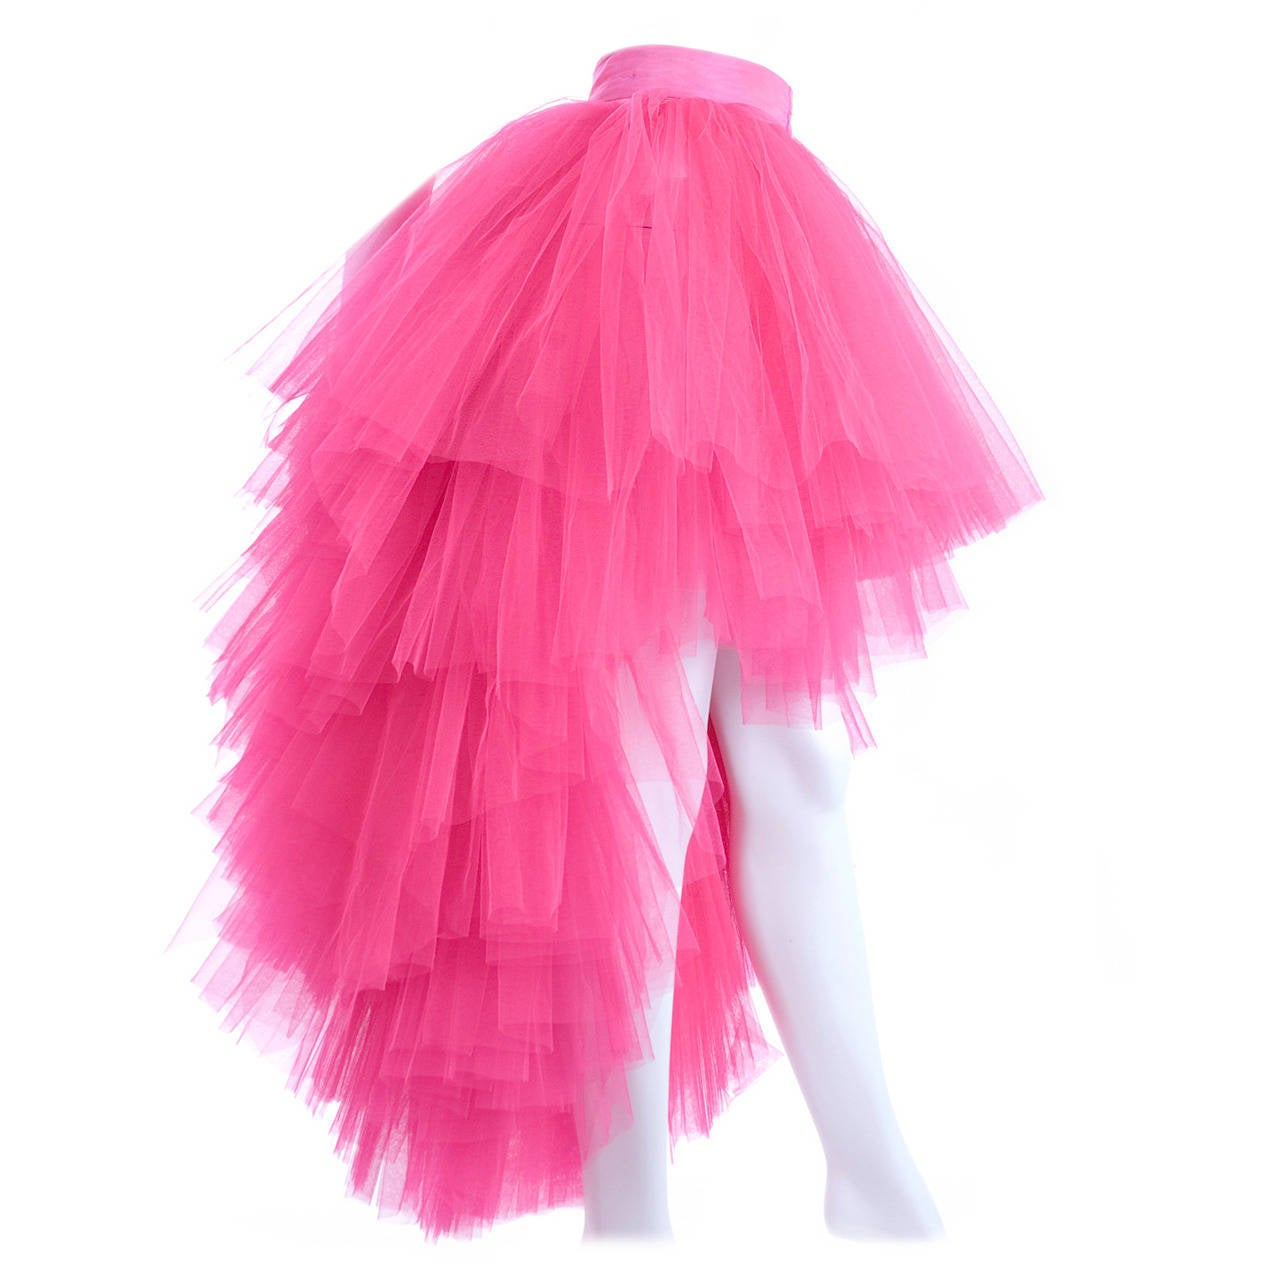 All About Eve Couture by Talbot Runhof Tulle Skirt 1